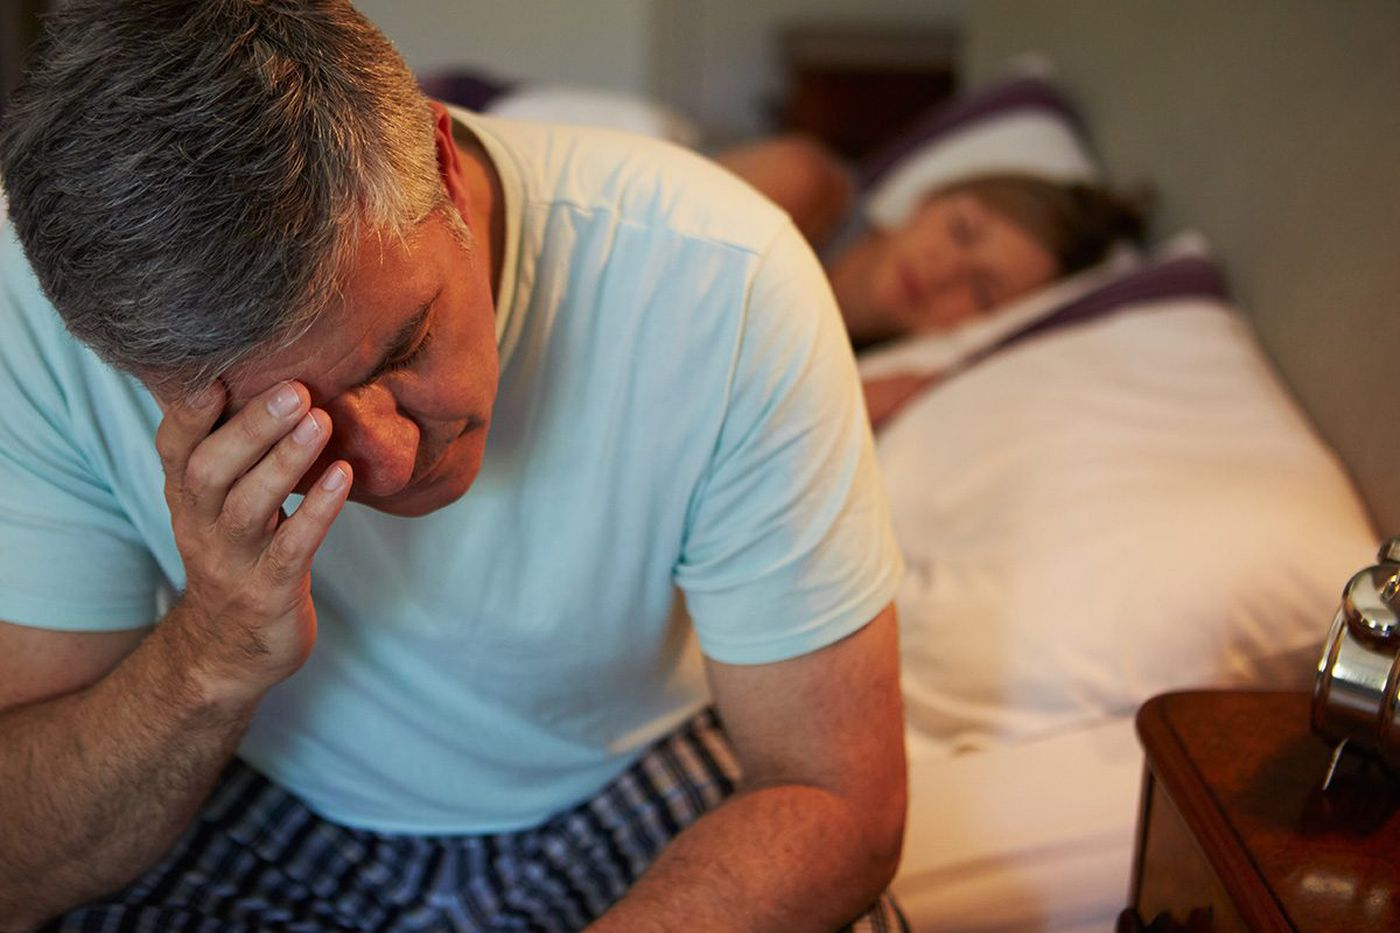 Sleeping through the ages: A solid snooze gets harder with time